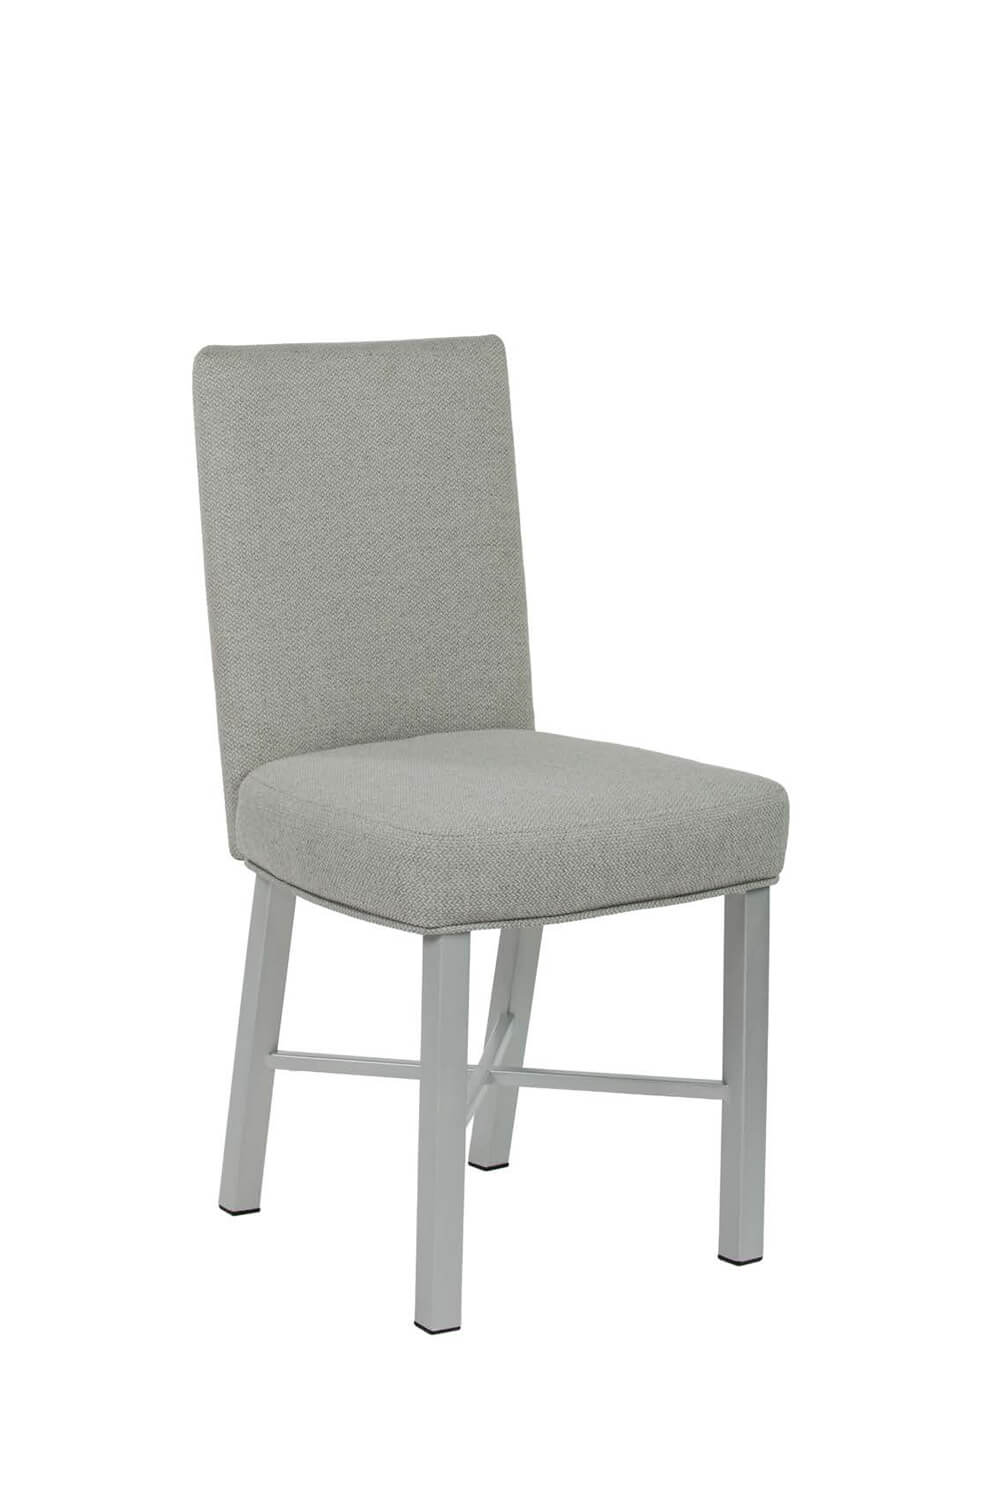 Jackson Upholstered Dining Chair